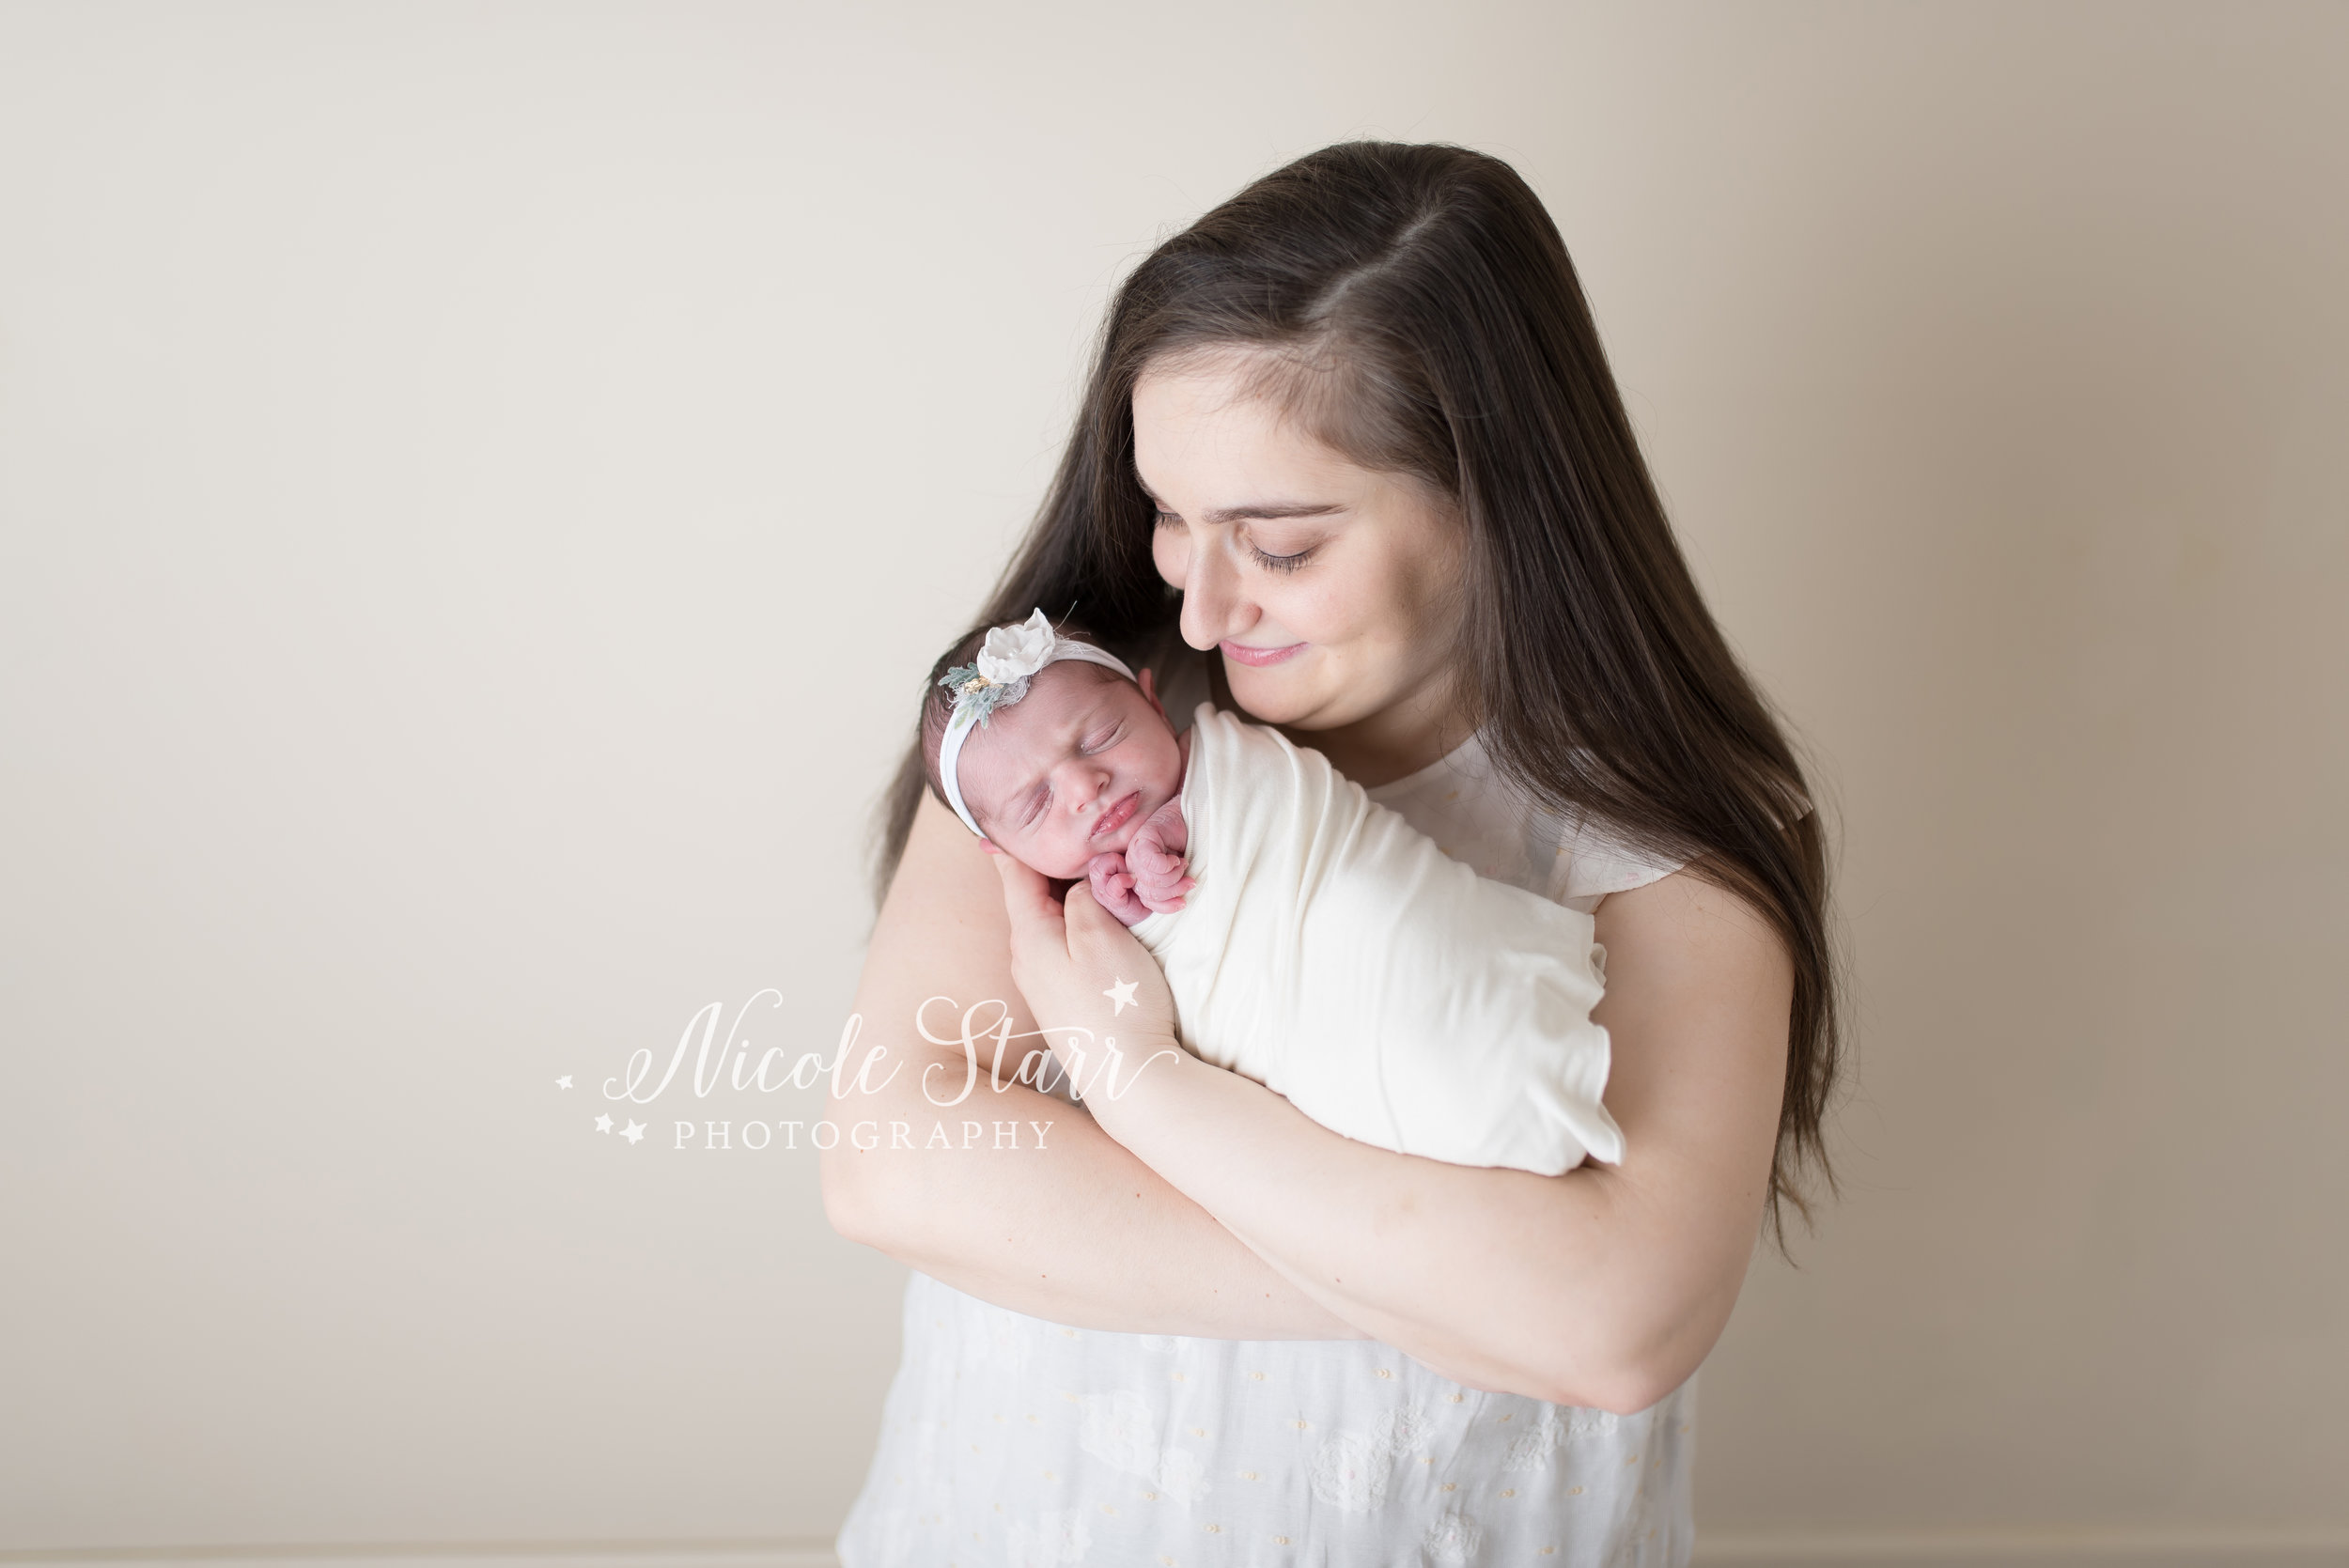 Nicole Starr Photography | Saratoga Springs Newborn Photographer | Boston Newborn Photographer | Upstate NY Newborn Photographer | Newborn Photographer | Delmar NY Newborn Photographer | Loudonville Newborn Photographer